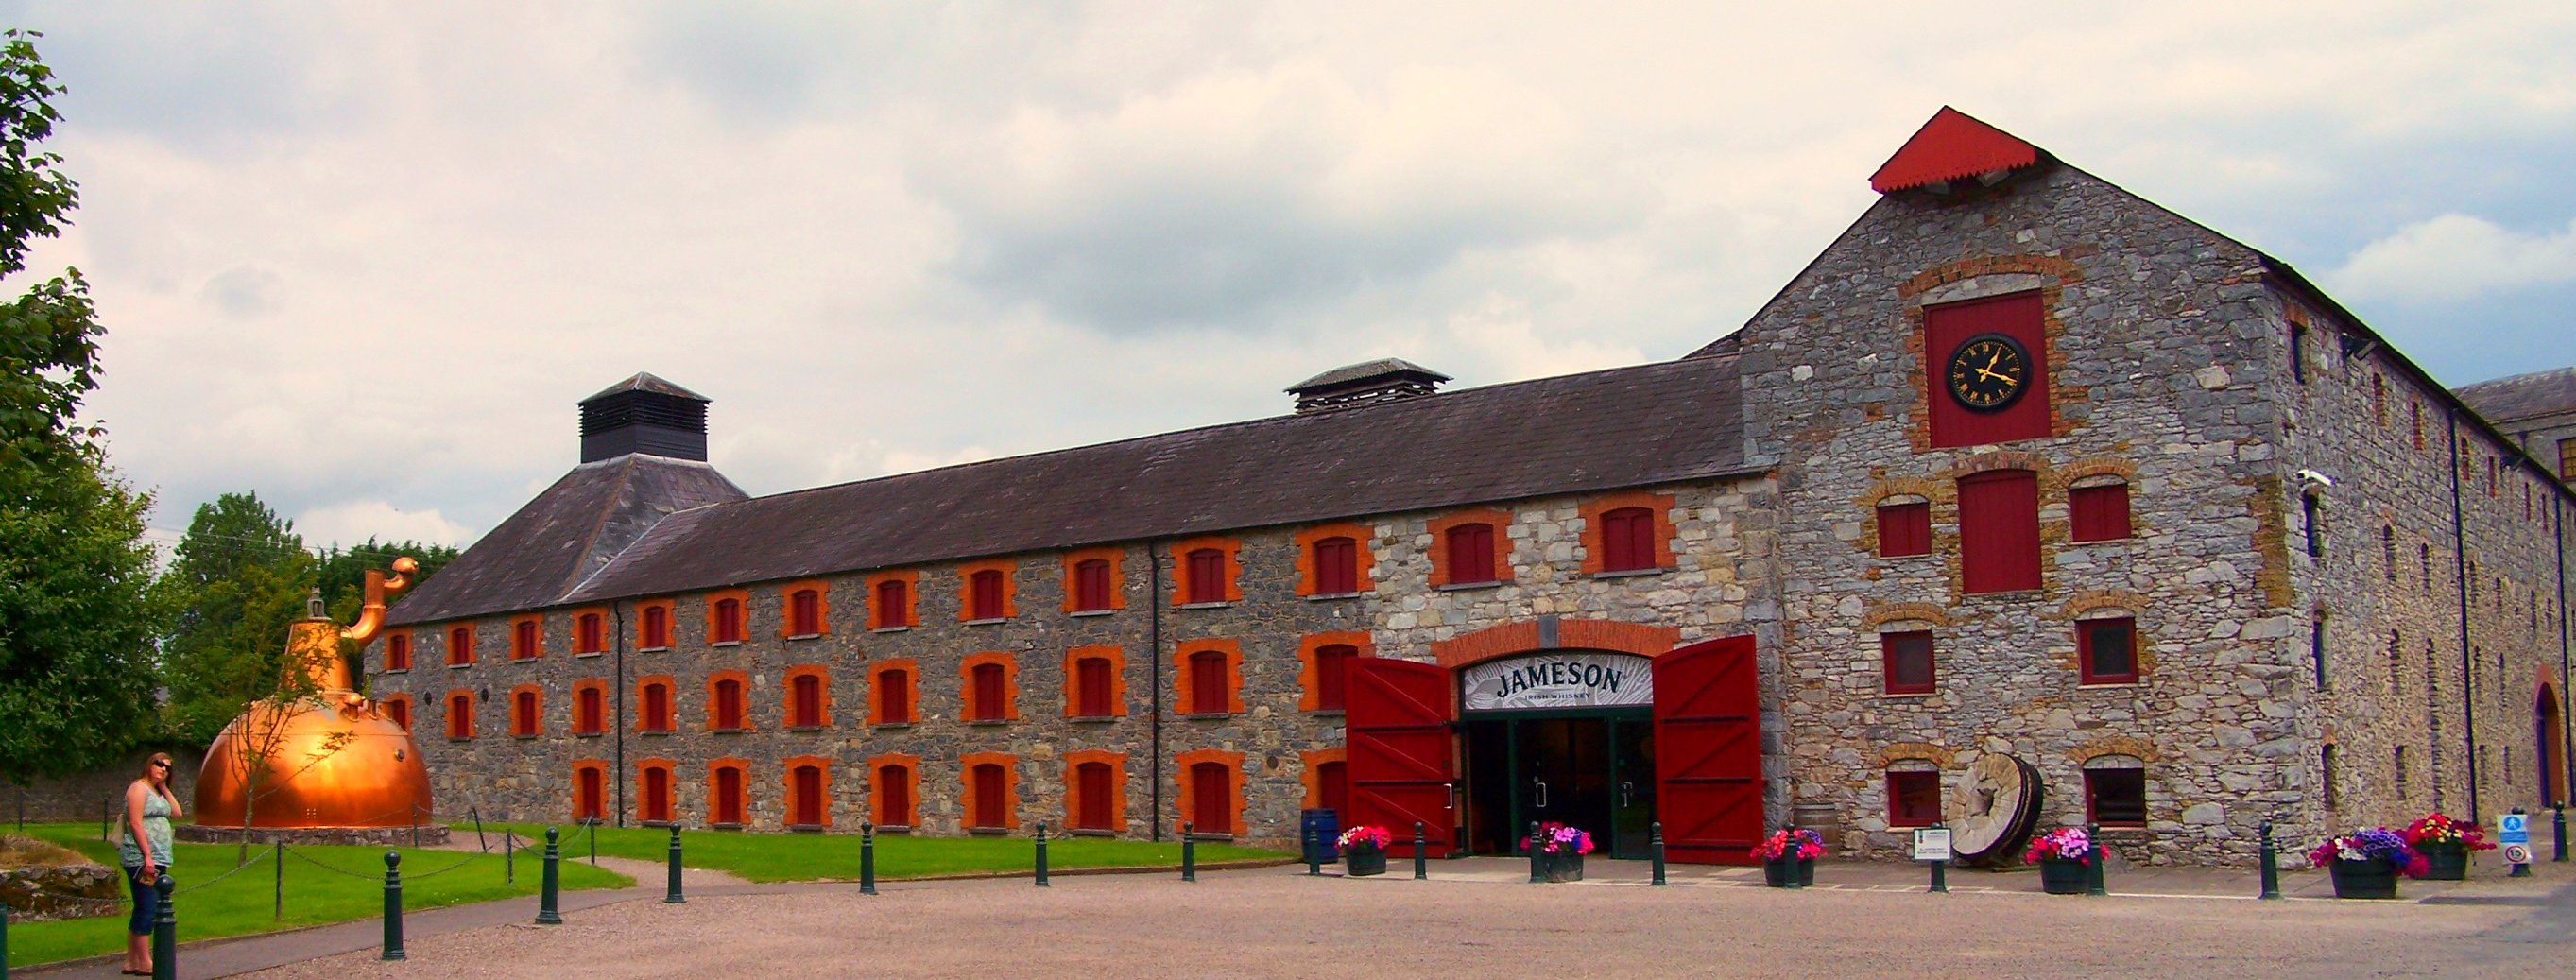 Top 10 de Cork - Middleton distillery